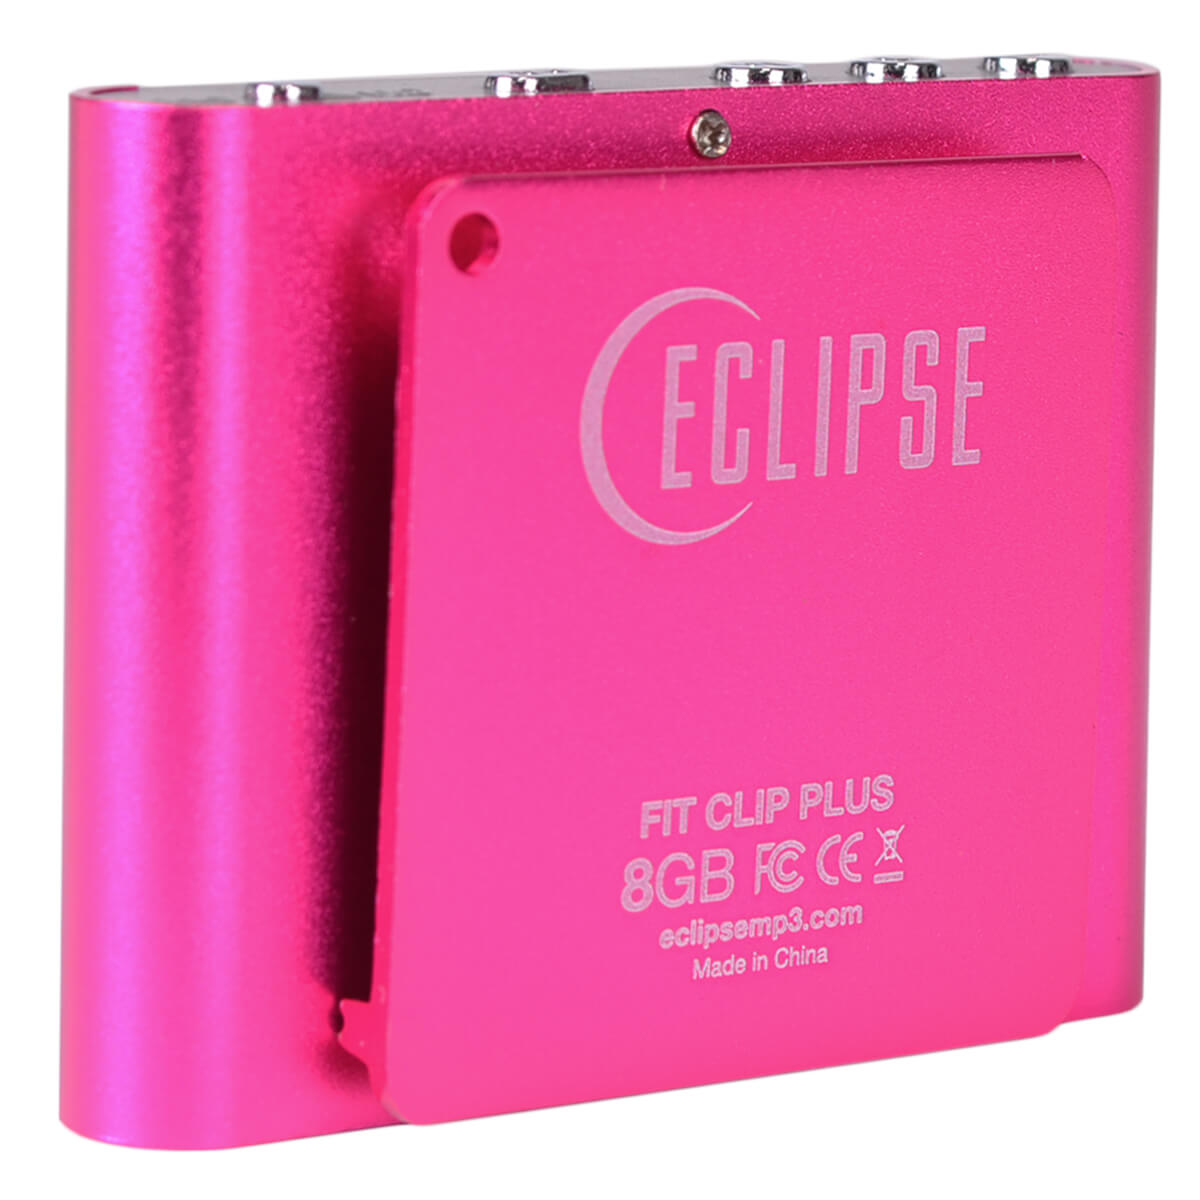 Eclipse-Fit-Clip-Plus-8GB-1-8-034-LCD-MP3-Digital-Music-Video-Player-amp-Pedometer thumbnail 9